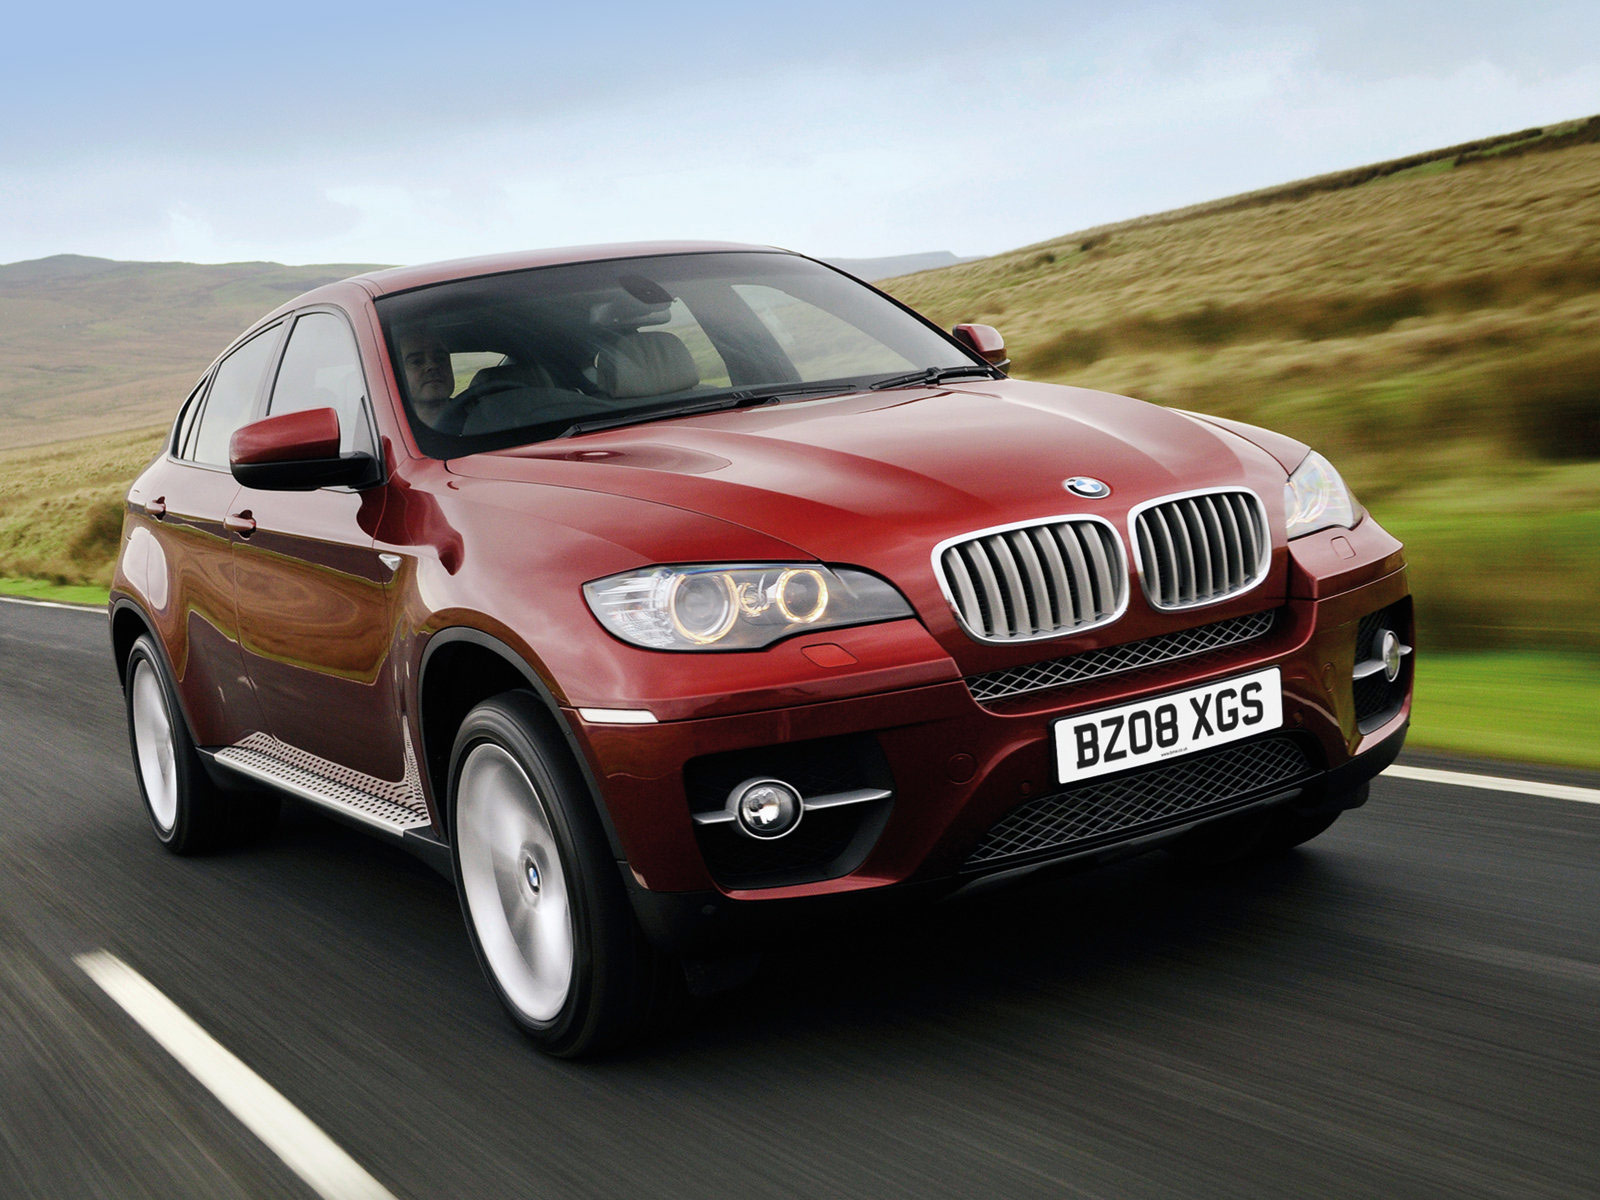 2009 bmw x6 uk version car desktop wallpapers accident lawyers info. Black Bedroom Furniture Sets. Home Design Ideas